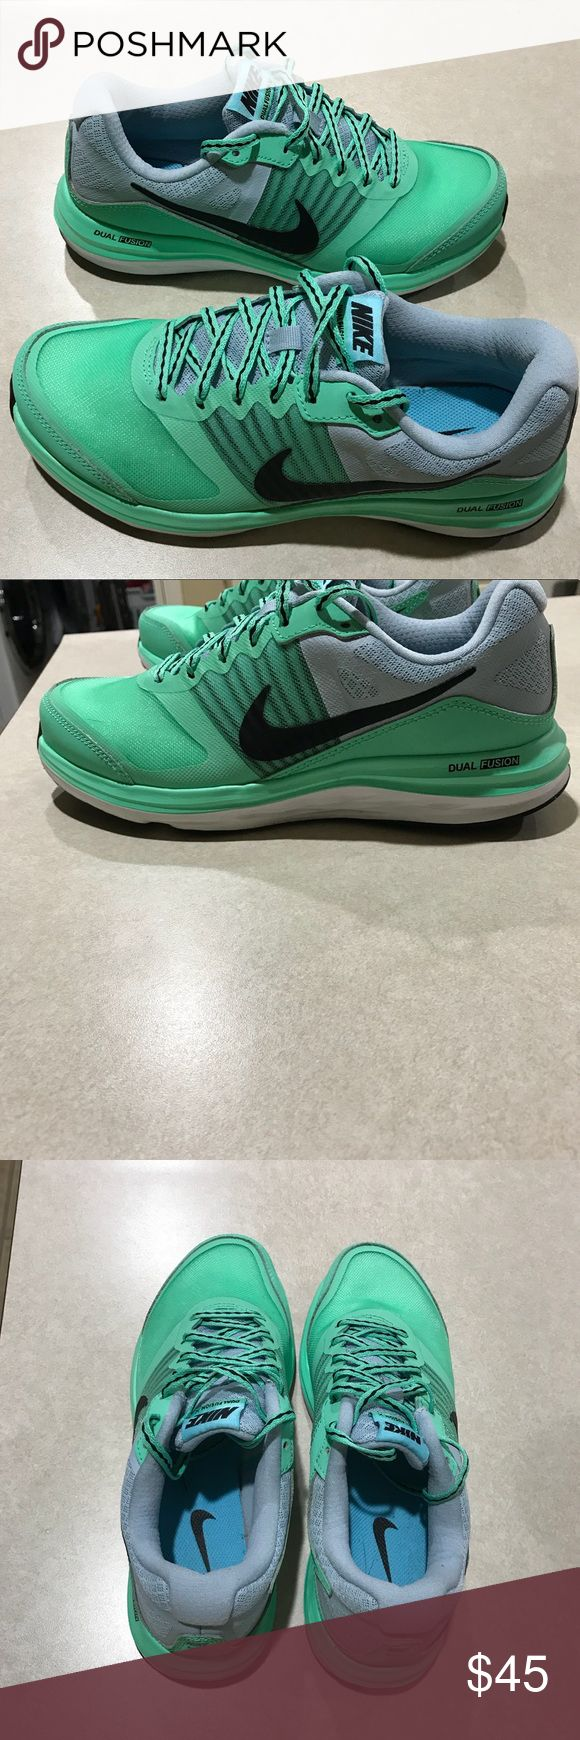 Nike Dual Fusion X running shoe. Size 7.5. EUC Nike Dual Fusion X running shoe. Size 7.5. EUC. Hard to find color! Perfect addition to any girls closet! (Been worm maybe a handful of times) Like new! Nike Shoes Sneakers